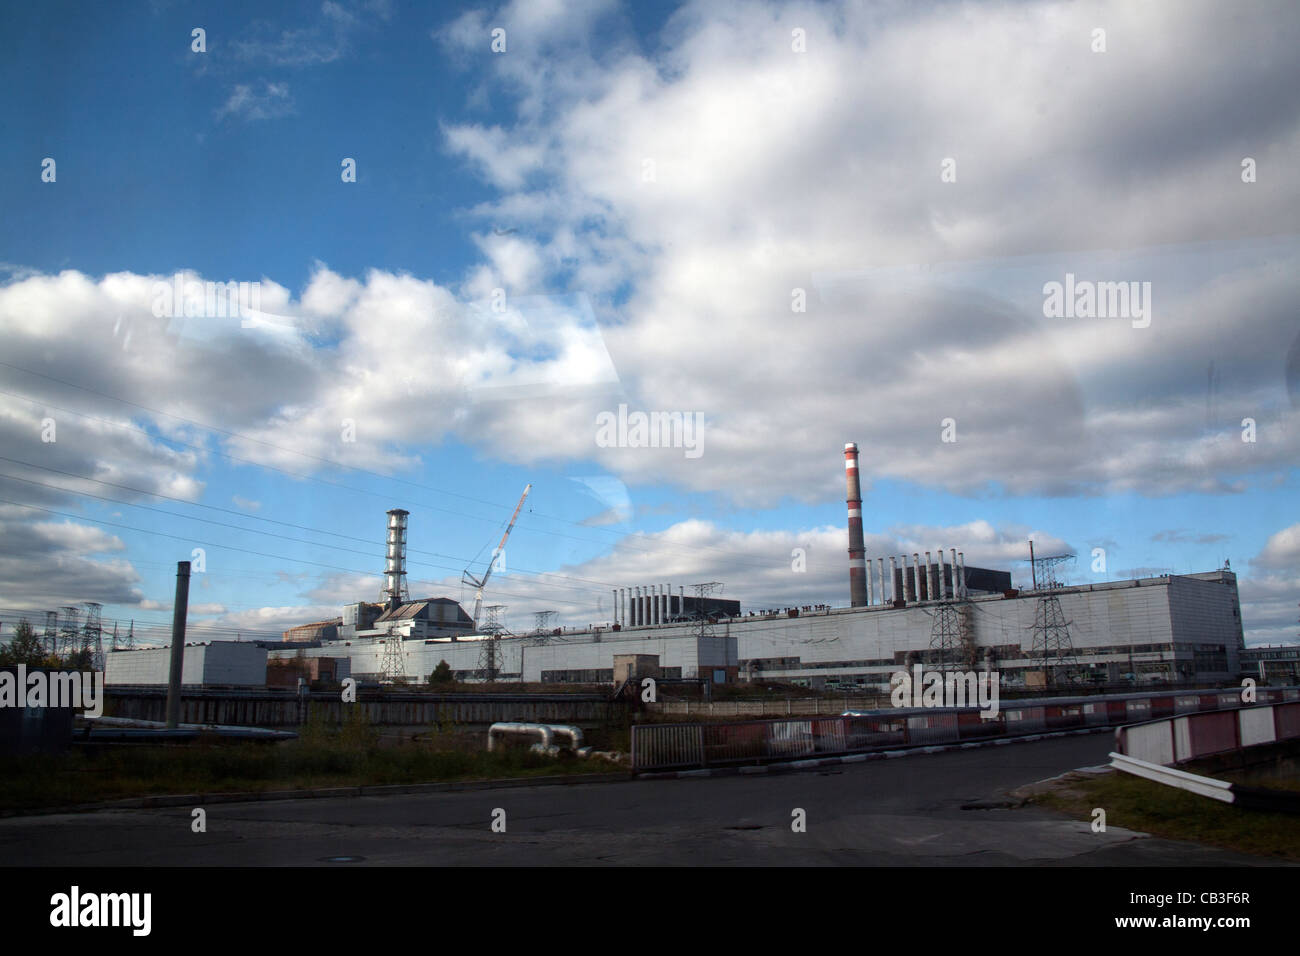 Reactor Number 4 at Chernobyl, encased in its old sarcophagus seen from the side, Ukraine - Stock Image